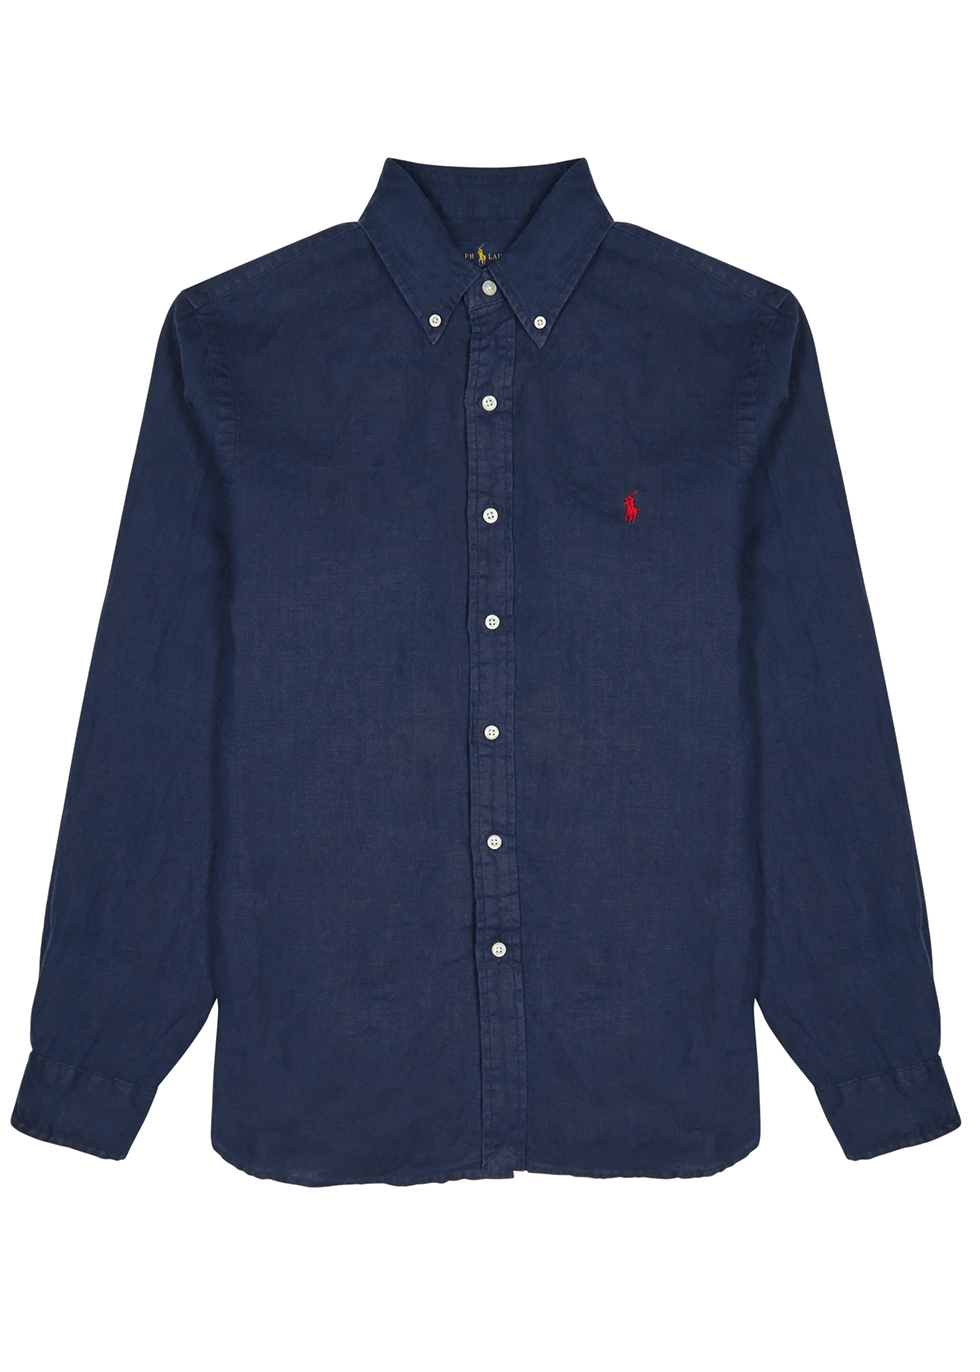 Navy slim linen shirt - Polo Ralph Lauren